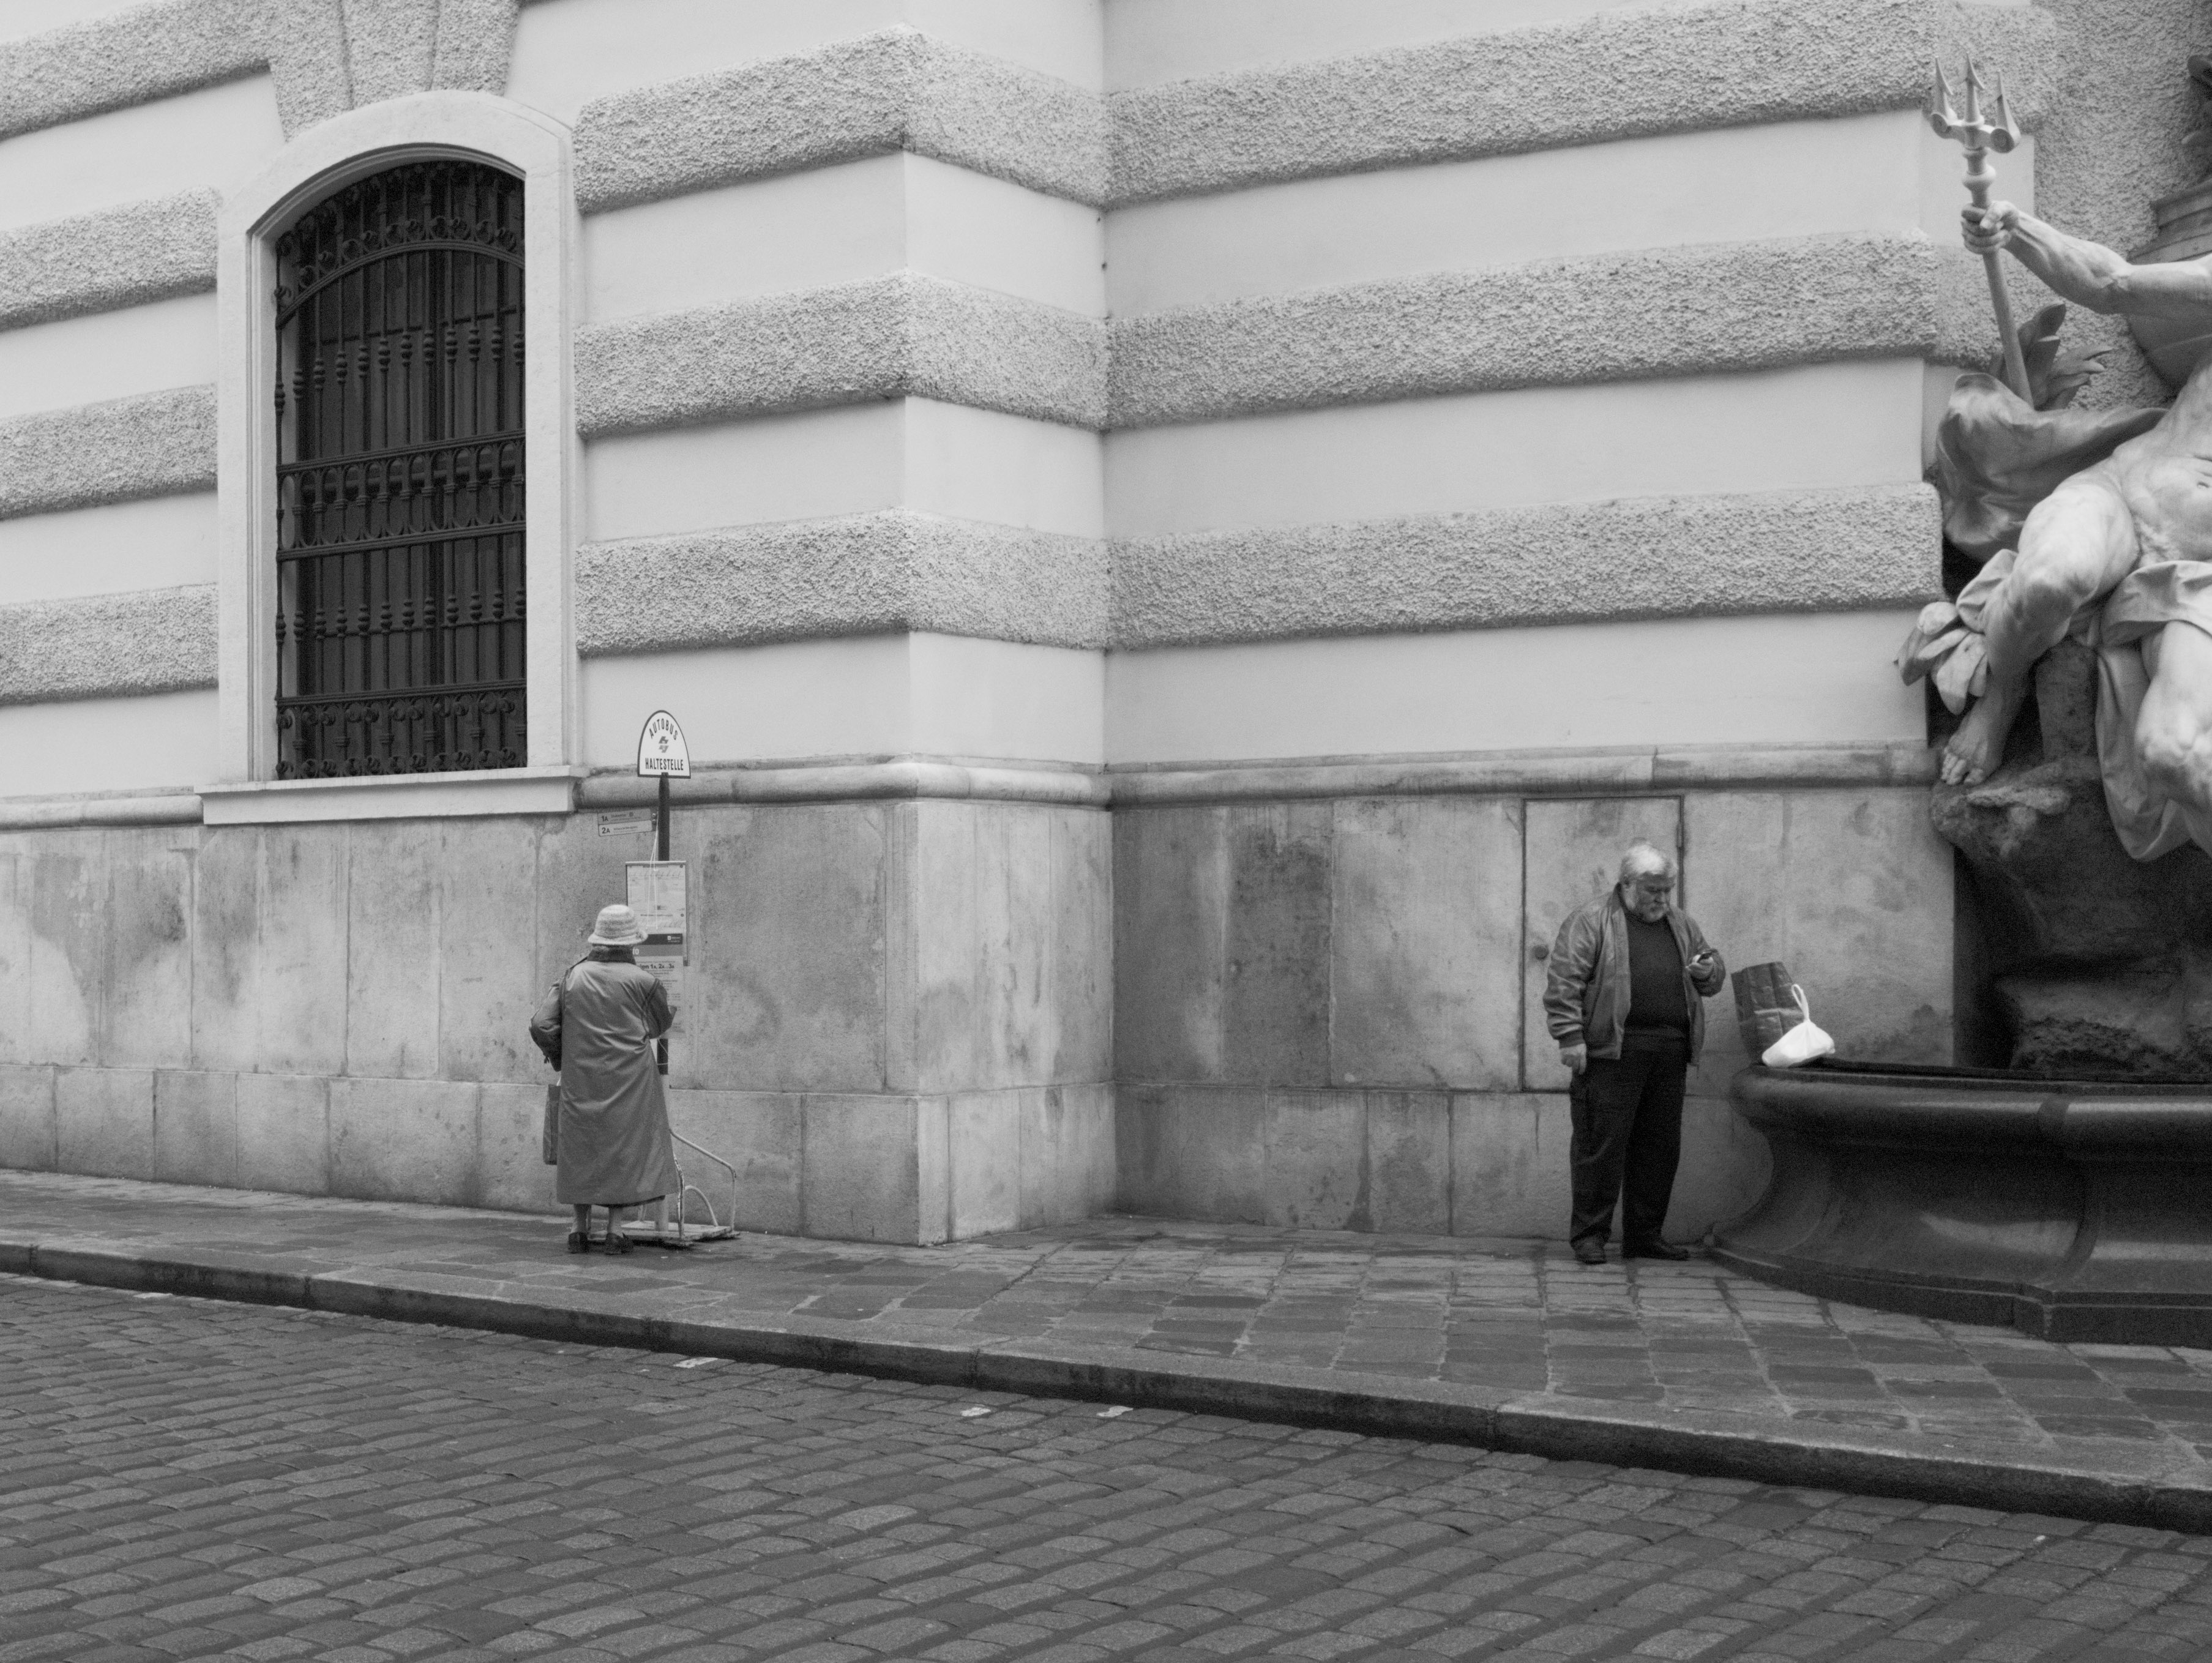 Waiting at Michaelerplatz (Innere Stadt, ) with Leica M Monochrom (Leica Summilux-M 35mm f/1.4 ASPH.) by Magnus L Andersson (photography.anderssoneklund.se) at 2012-12-17 11:19:46